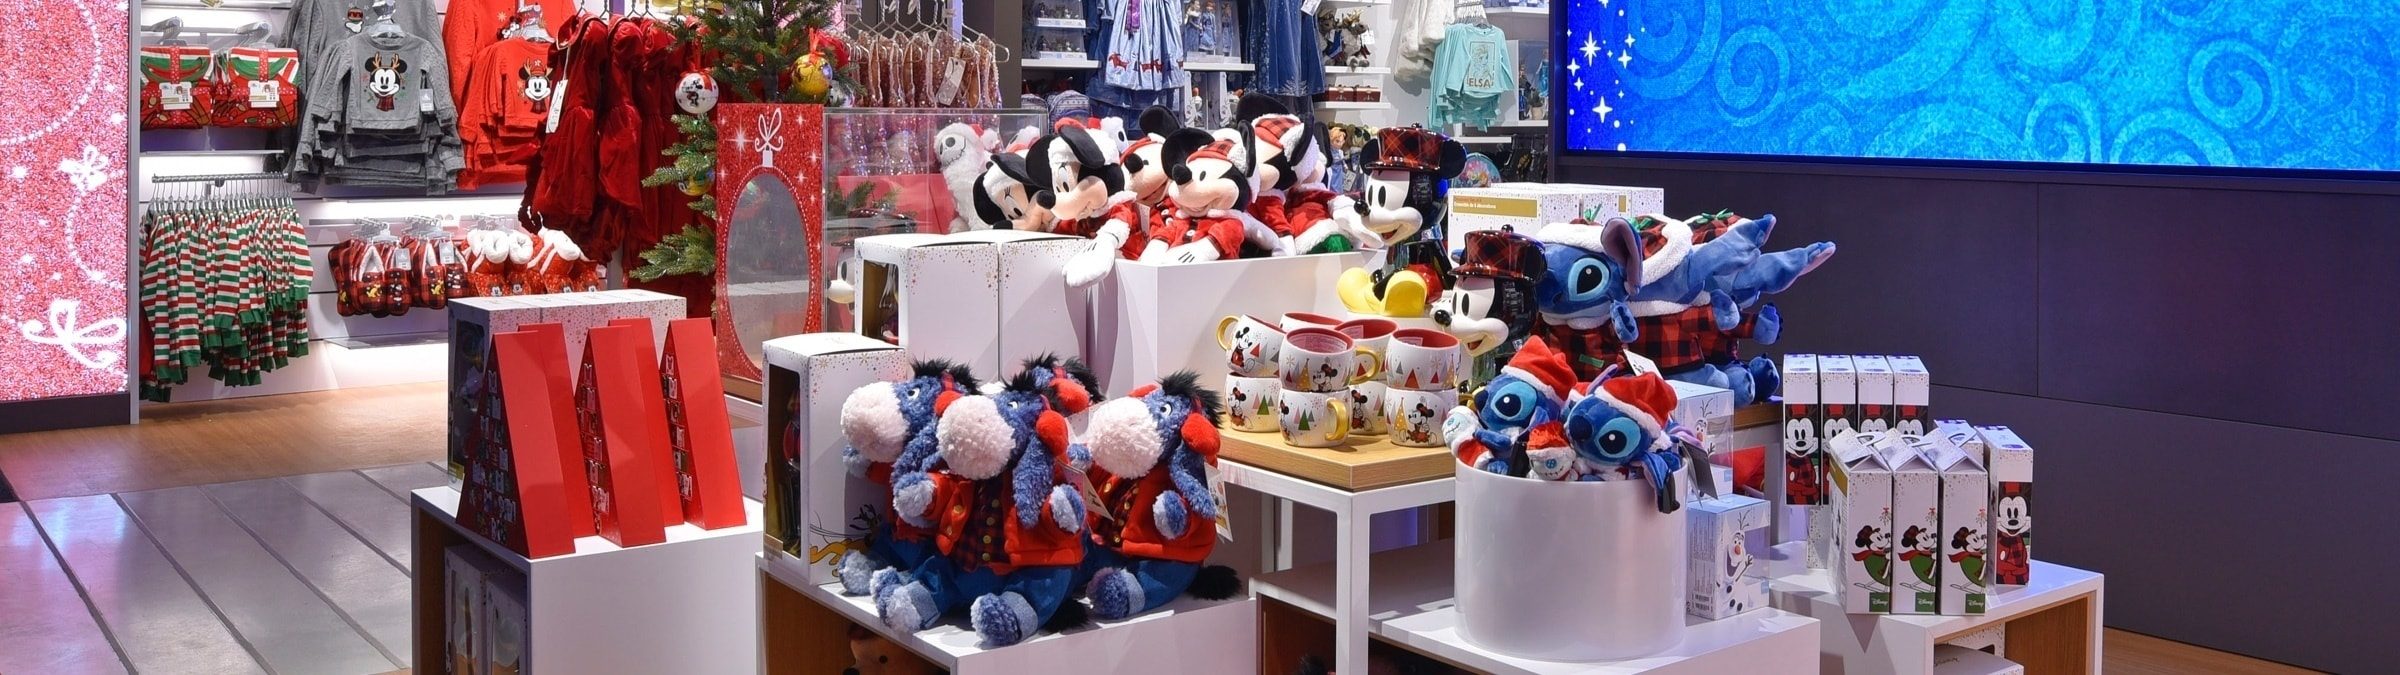 shopDisney | Disney Store Munich Article Hero